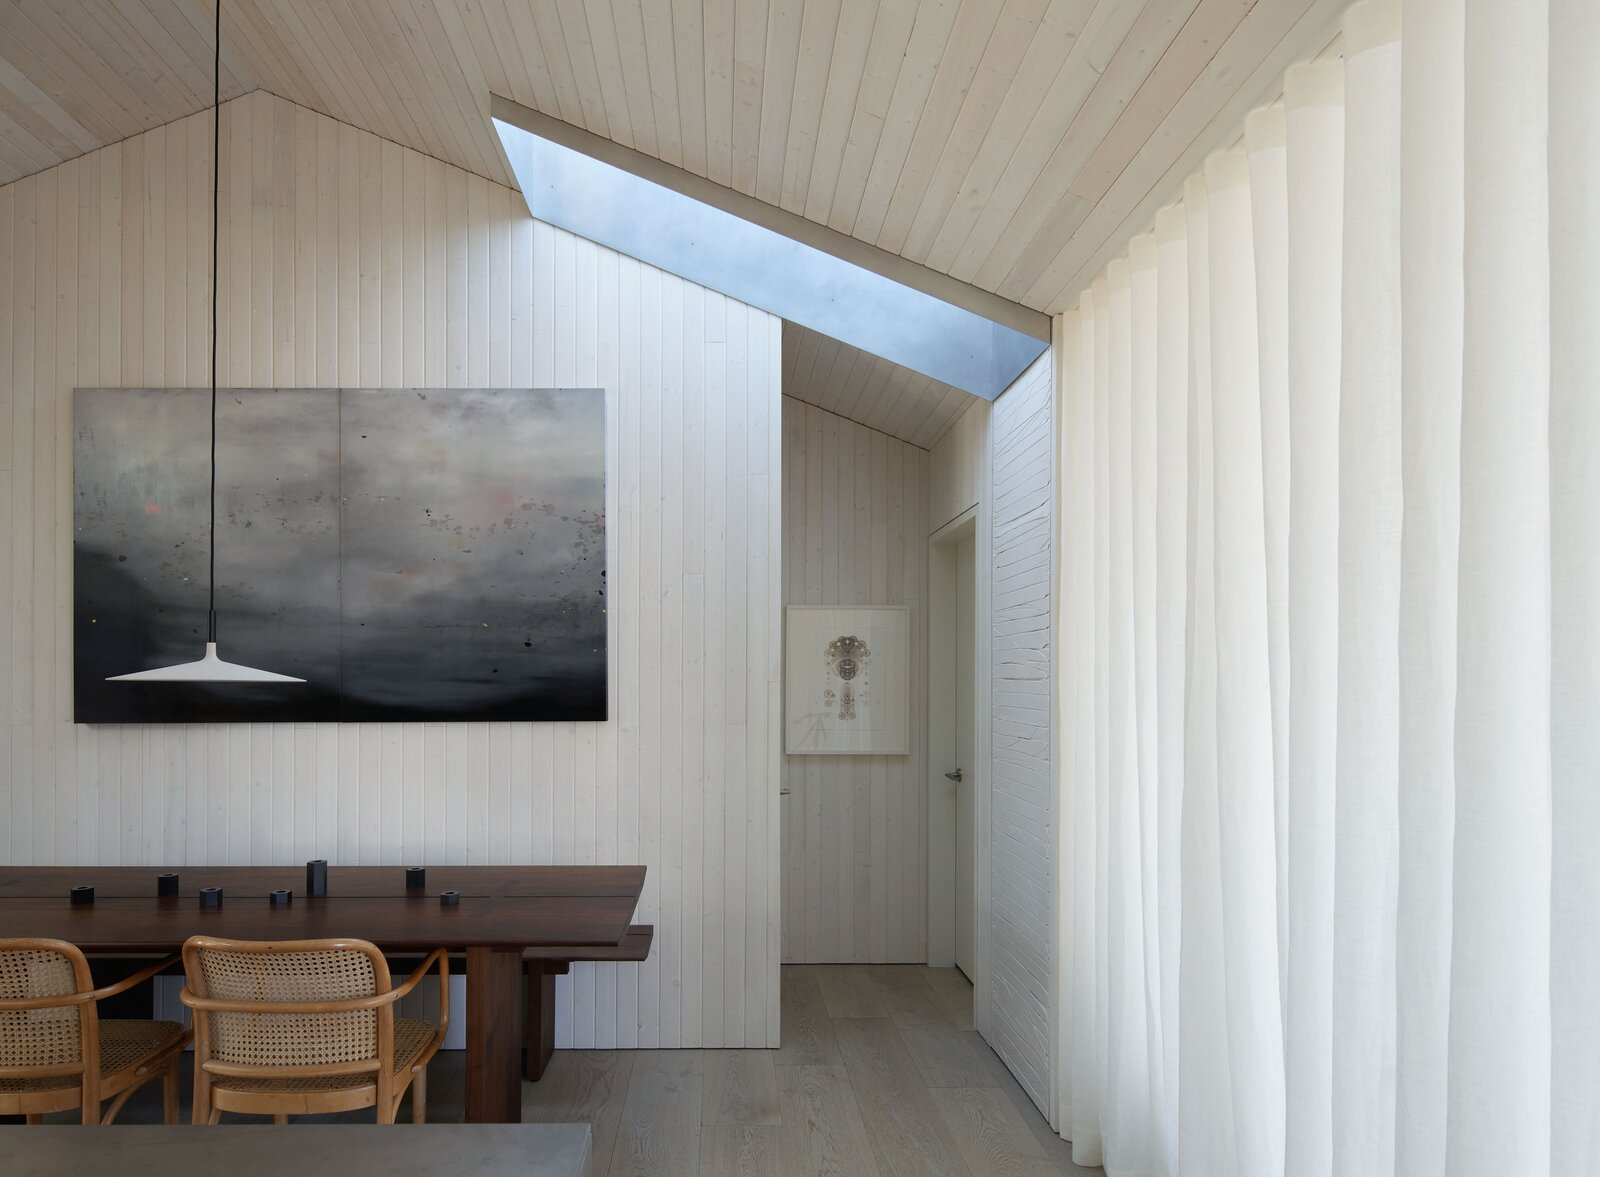 """Dining Room, Light Hardwood Floor, Chair, Pendant Lighting, and Table A sheer curtain divides the living spaces as needed, while another lightwell directs sunlight into the dining area. """"The pendant lights above the island and dining table are actually made of concrete, which I thought was a fun juxtaposition against the lightness of the room and general materials chosen,"""" Suzanne adds.  Photo by Kevin Scott  Photo 7 of 13 in This Breezy Floating Home Makes the Most of a Tranquil Setting Along Seattle's Portage Bay"""